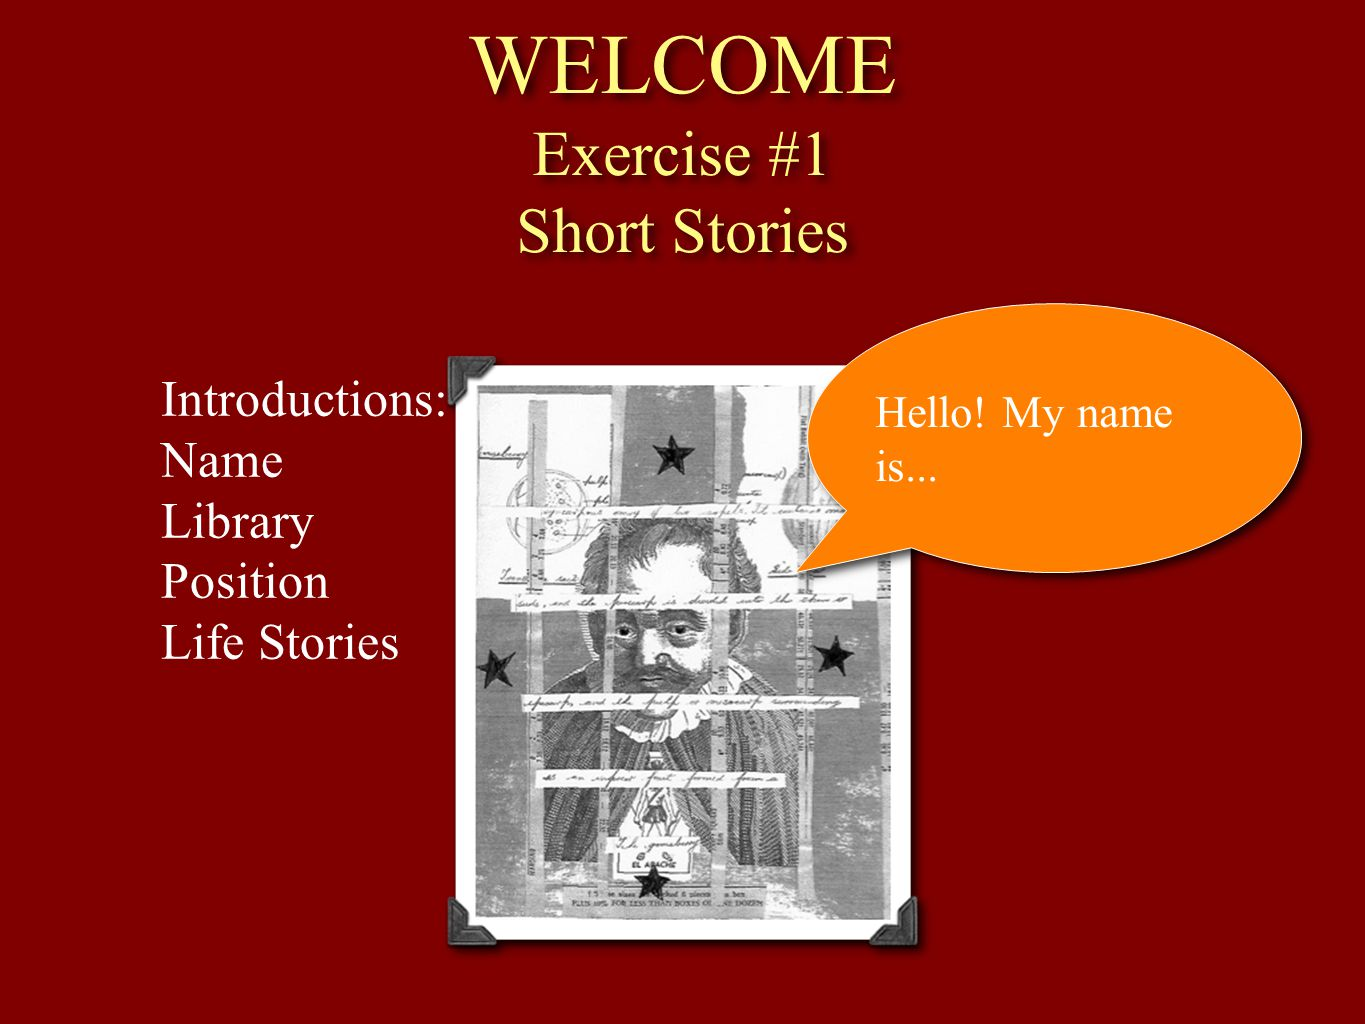 WELCOME Exercise #1 Short Stories